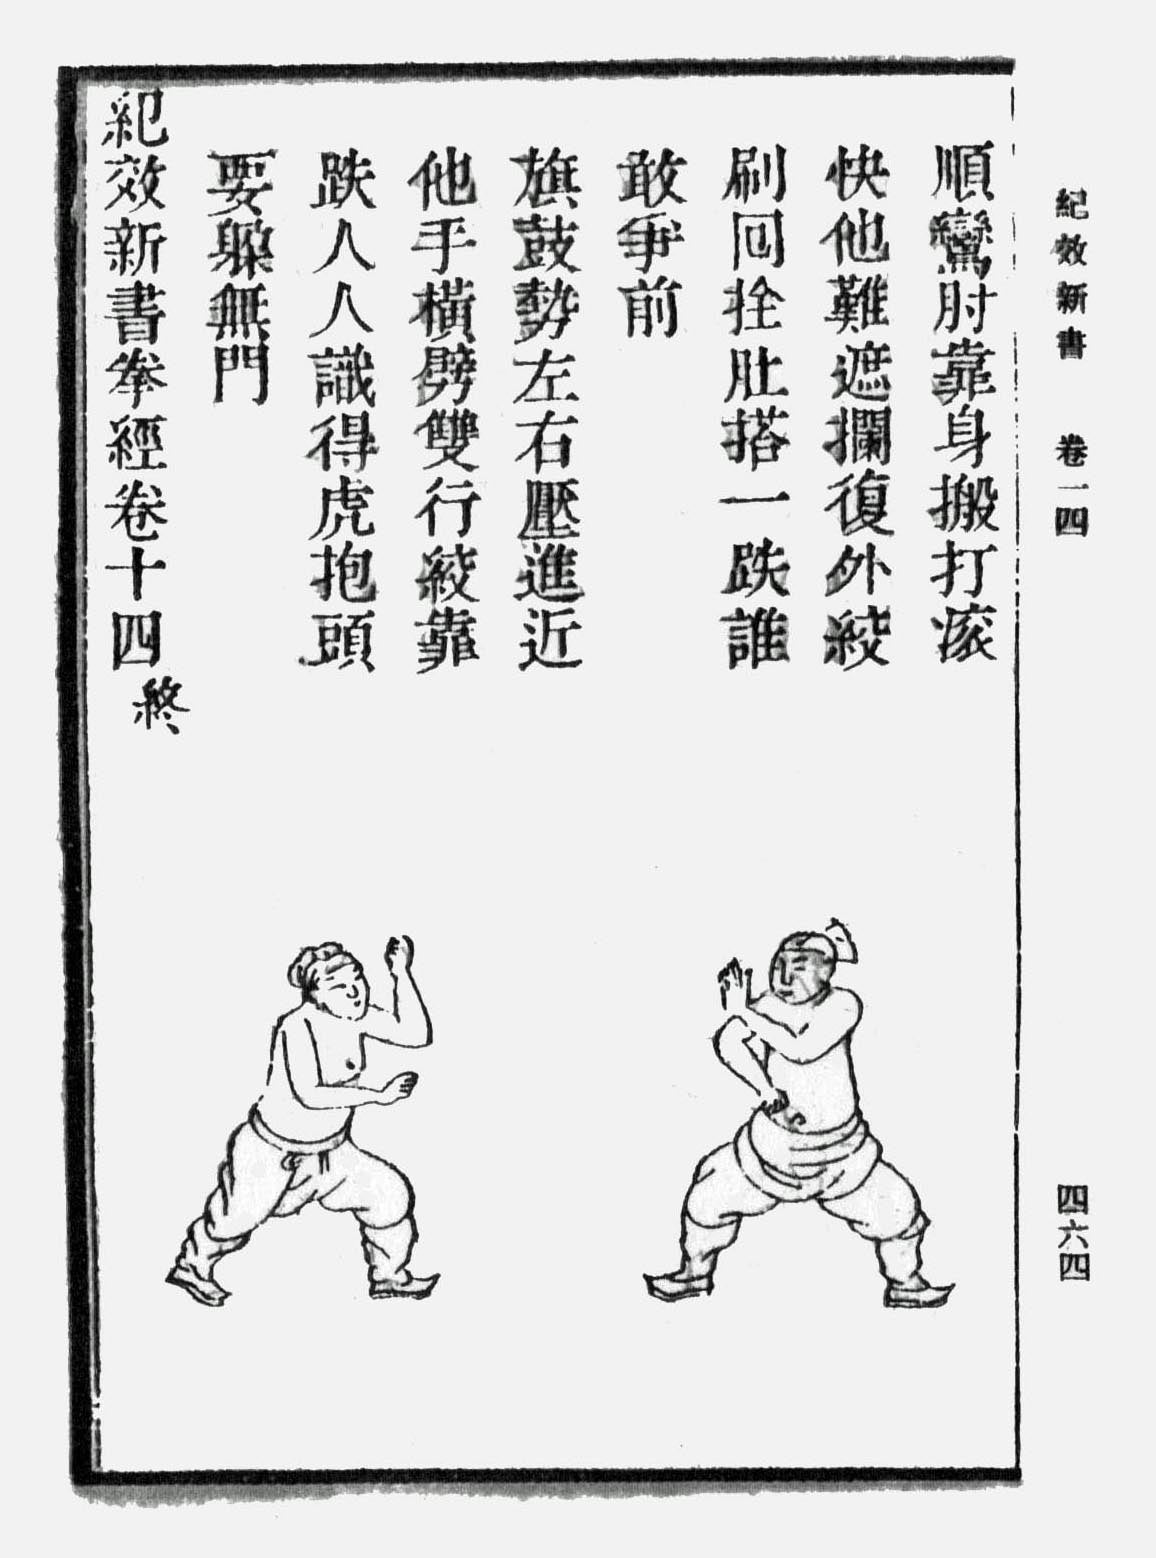 Photo 9 Courtesy: Wiki Commons, Unarmed fighting techniques as depicted in the Jì Xiào Xīn Shū manual.